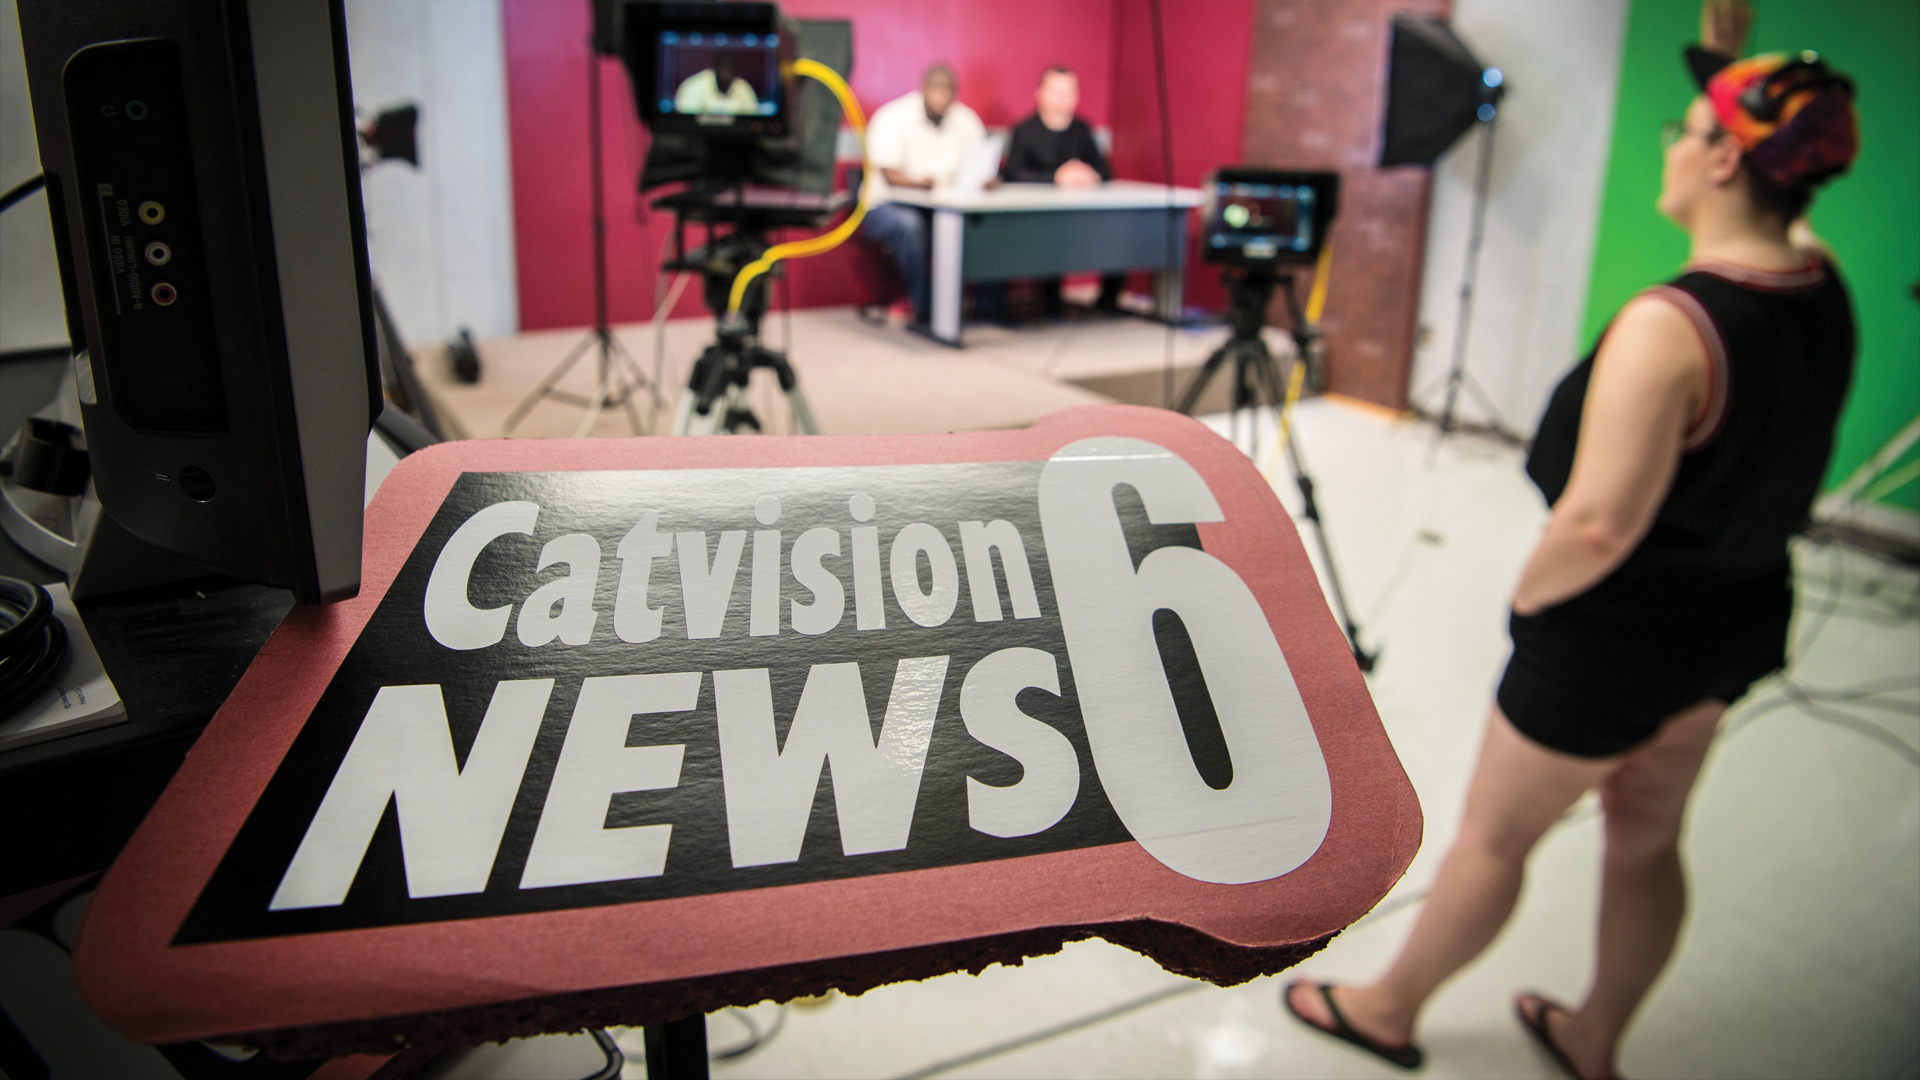 WSC stduents film Catvision 6 news